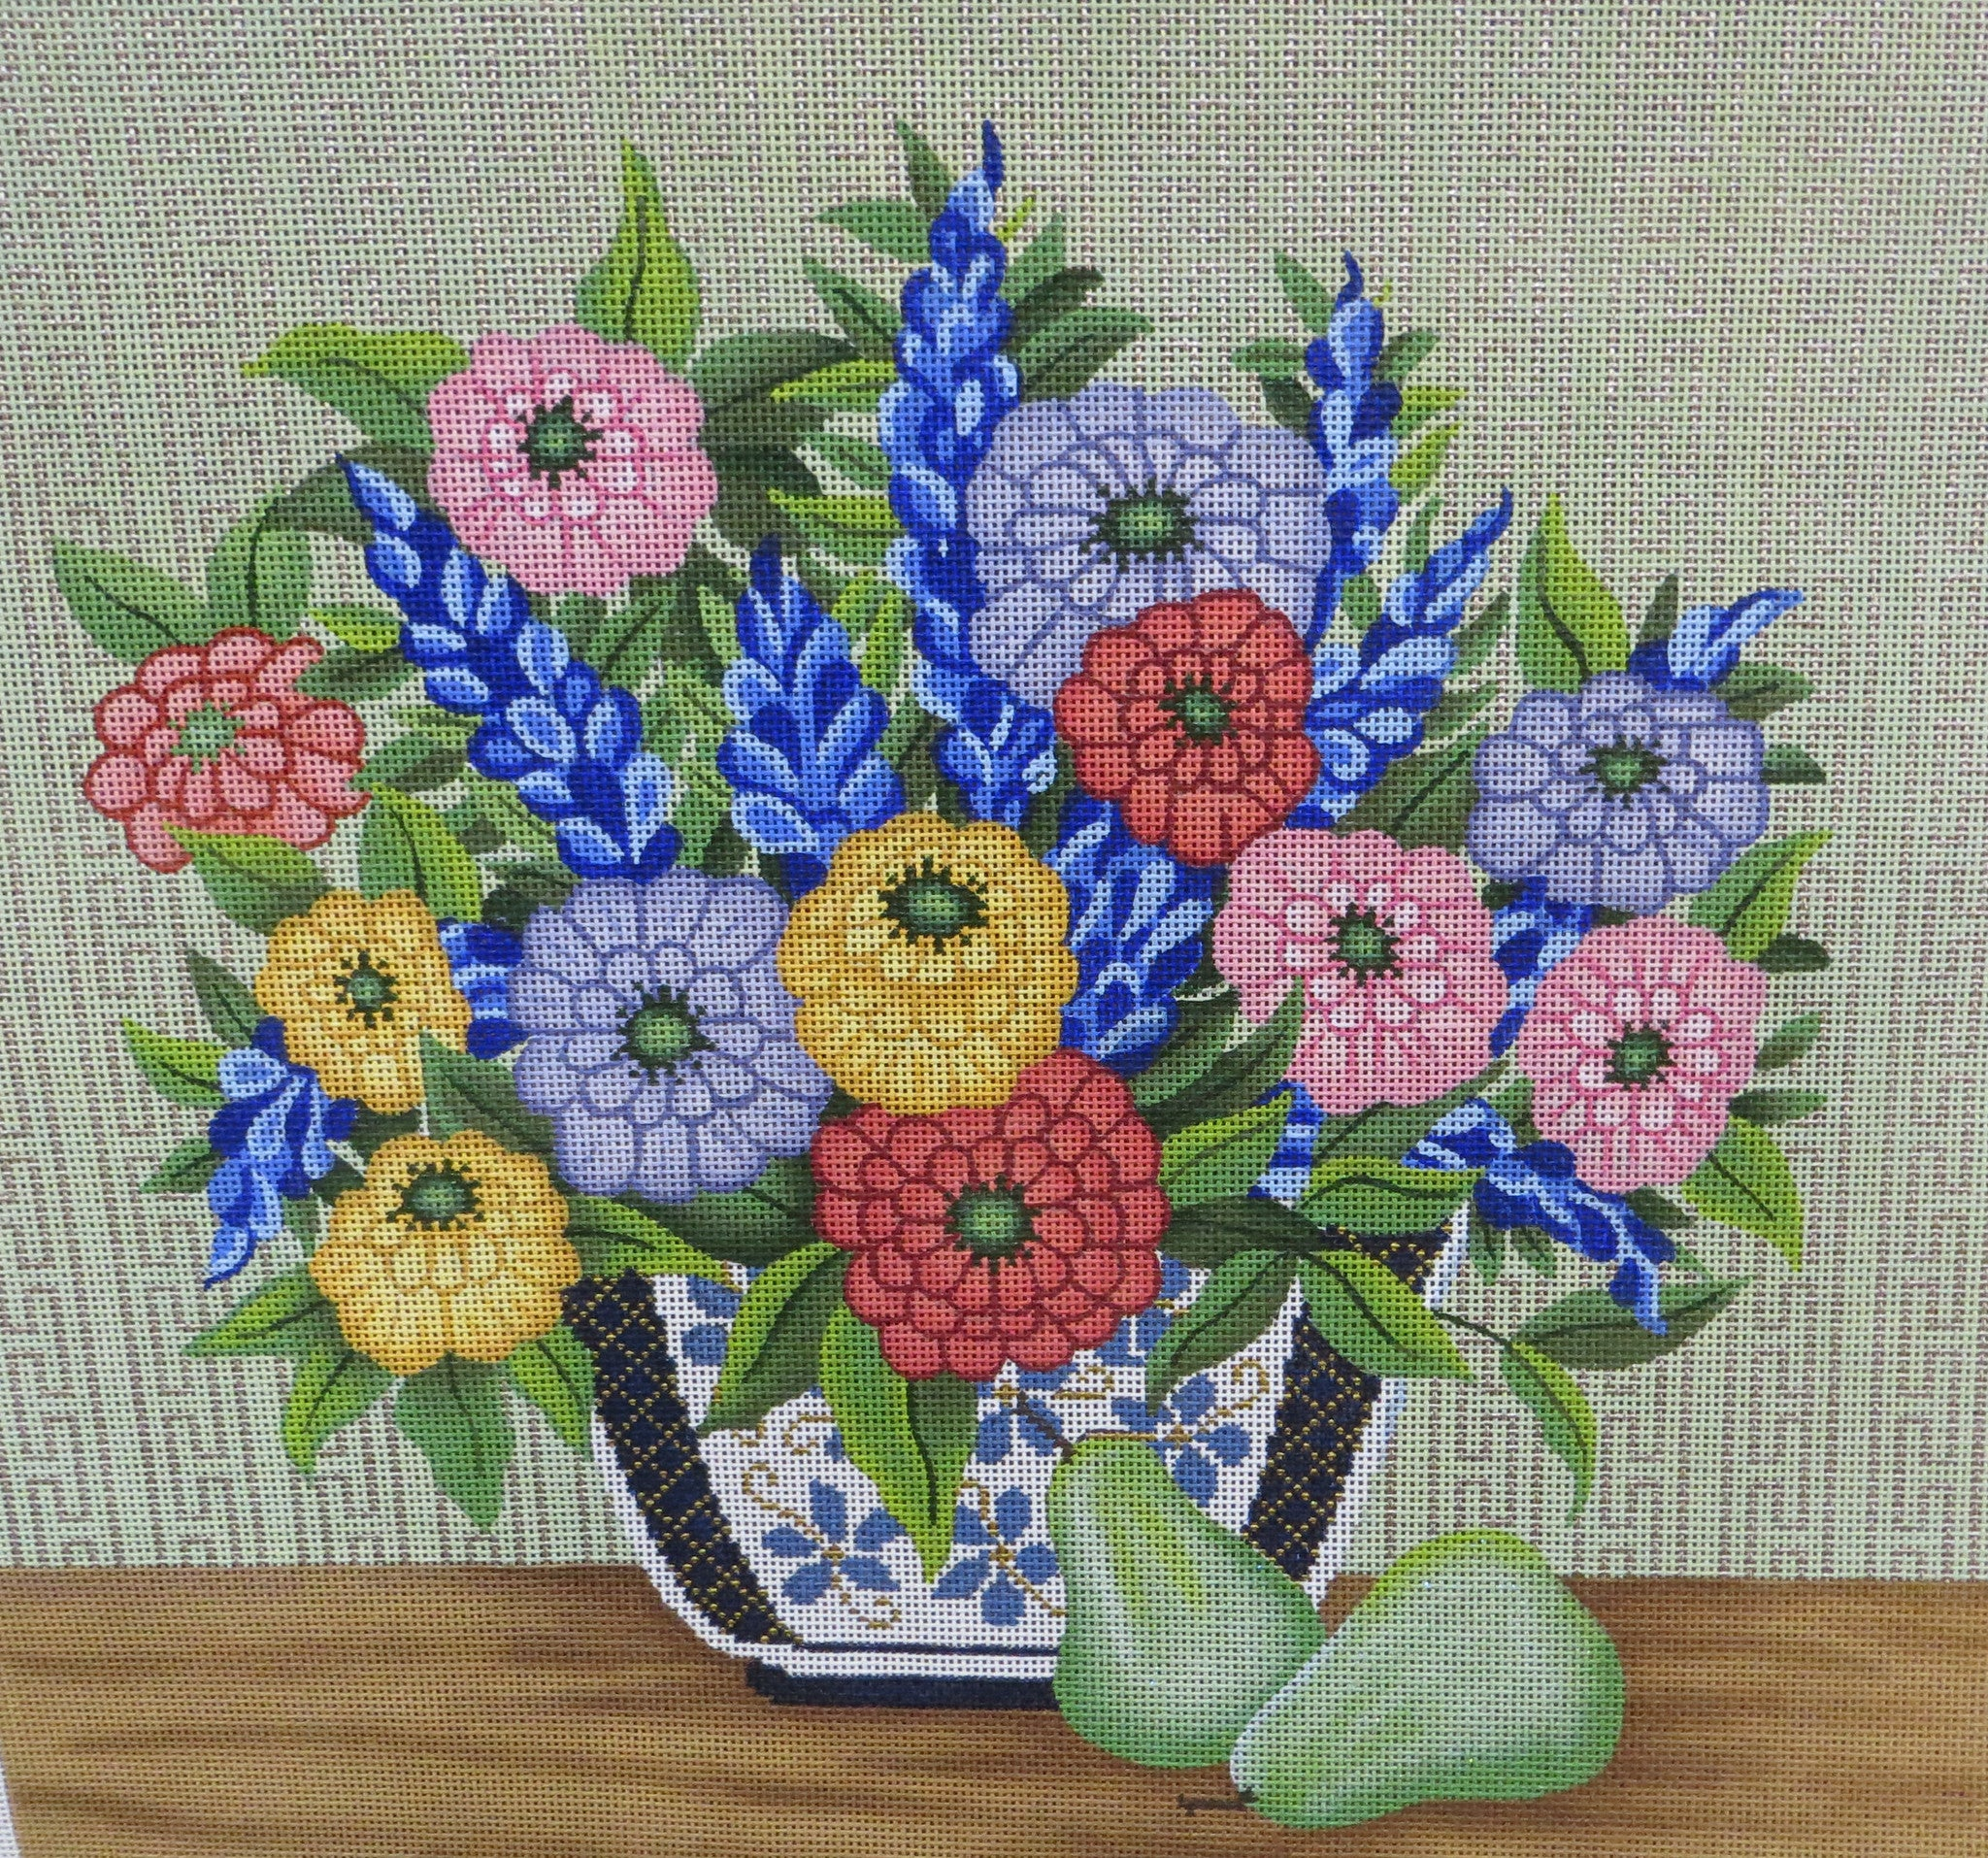 Flowers in blue and white vase